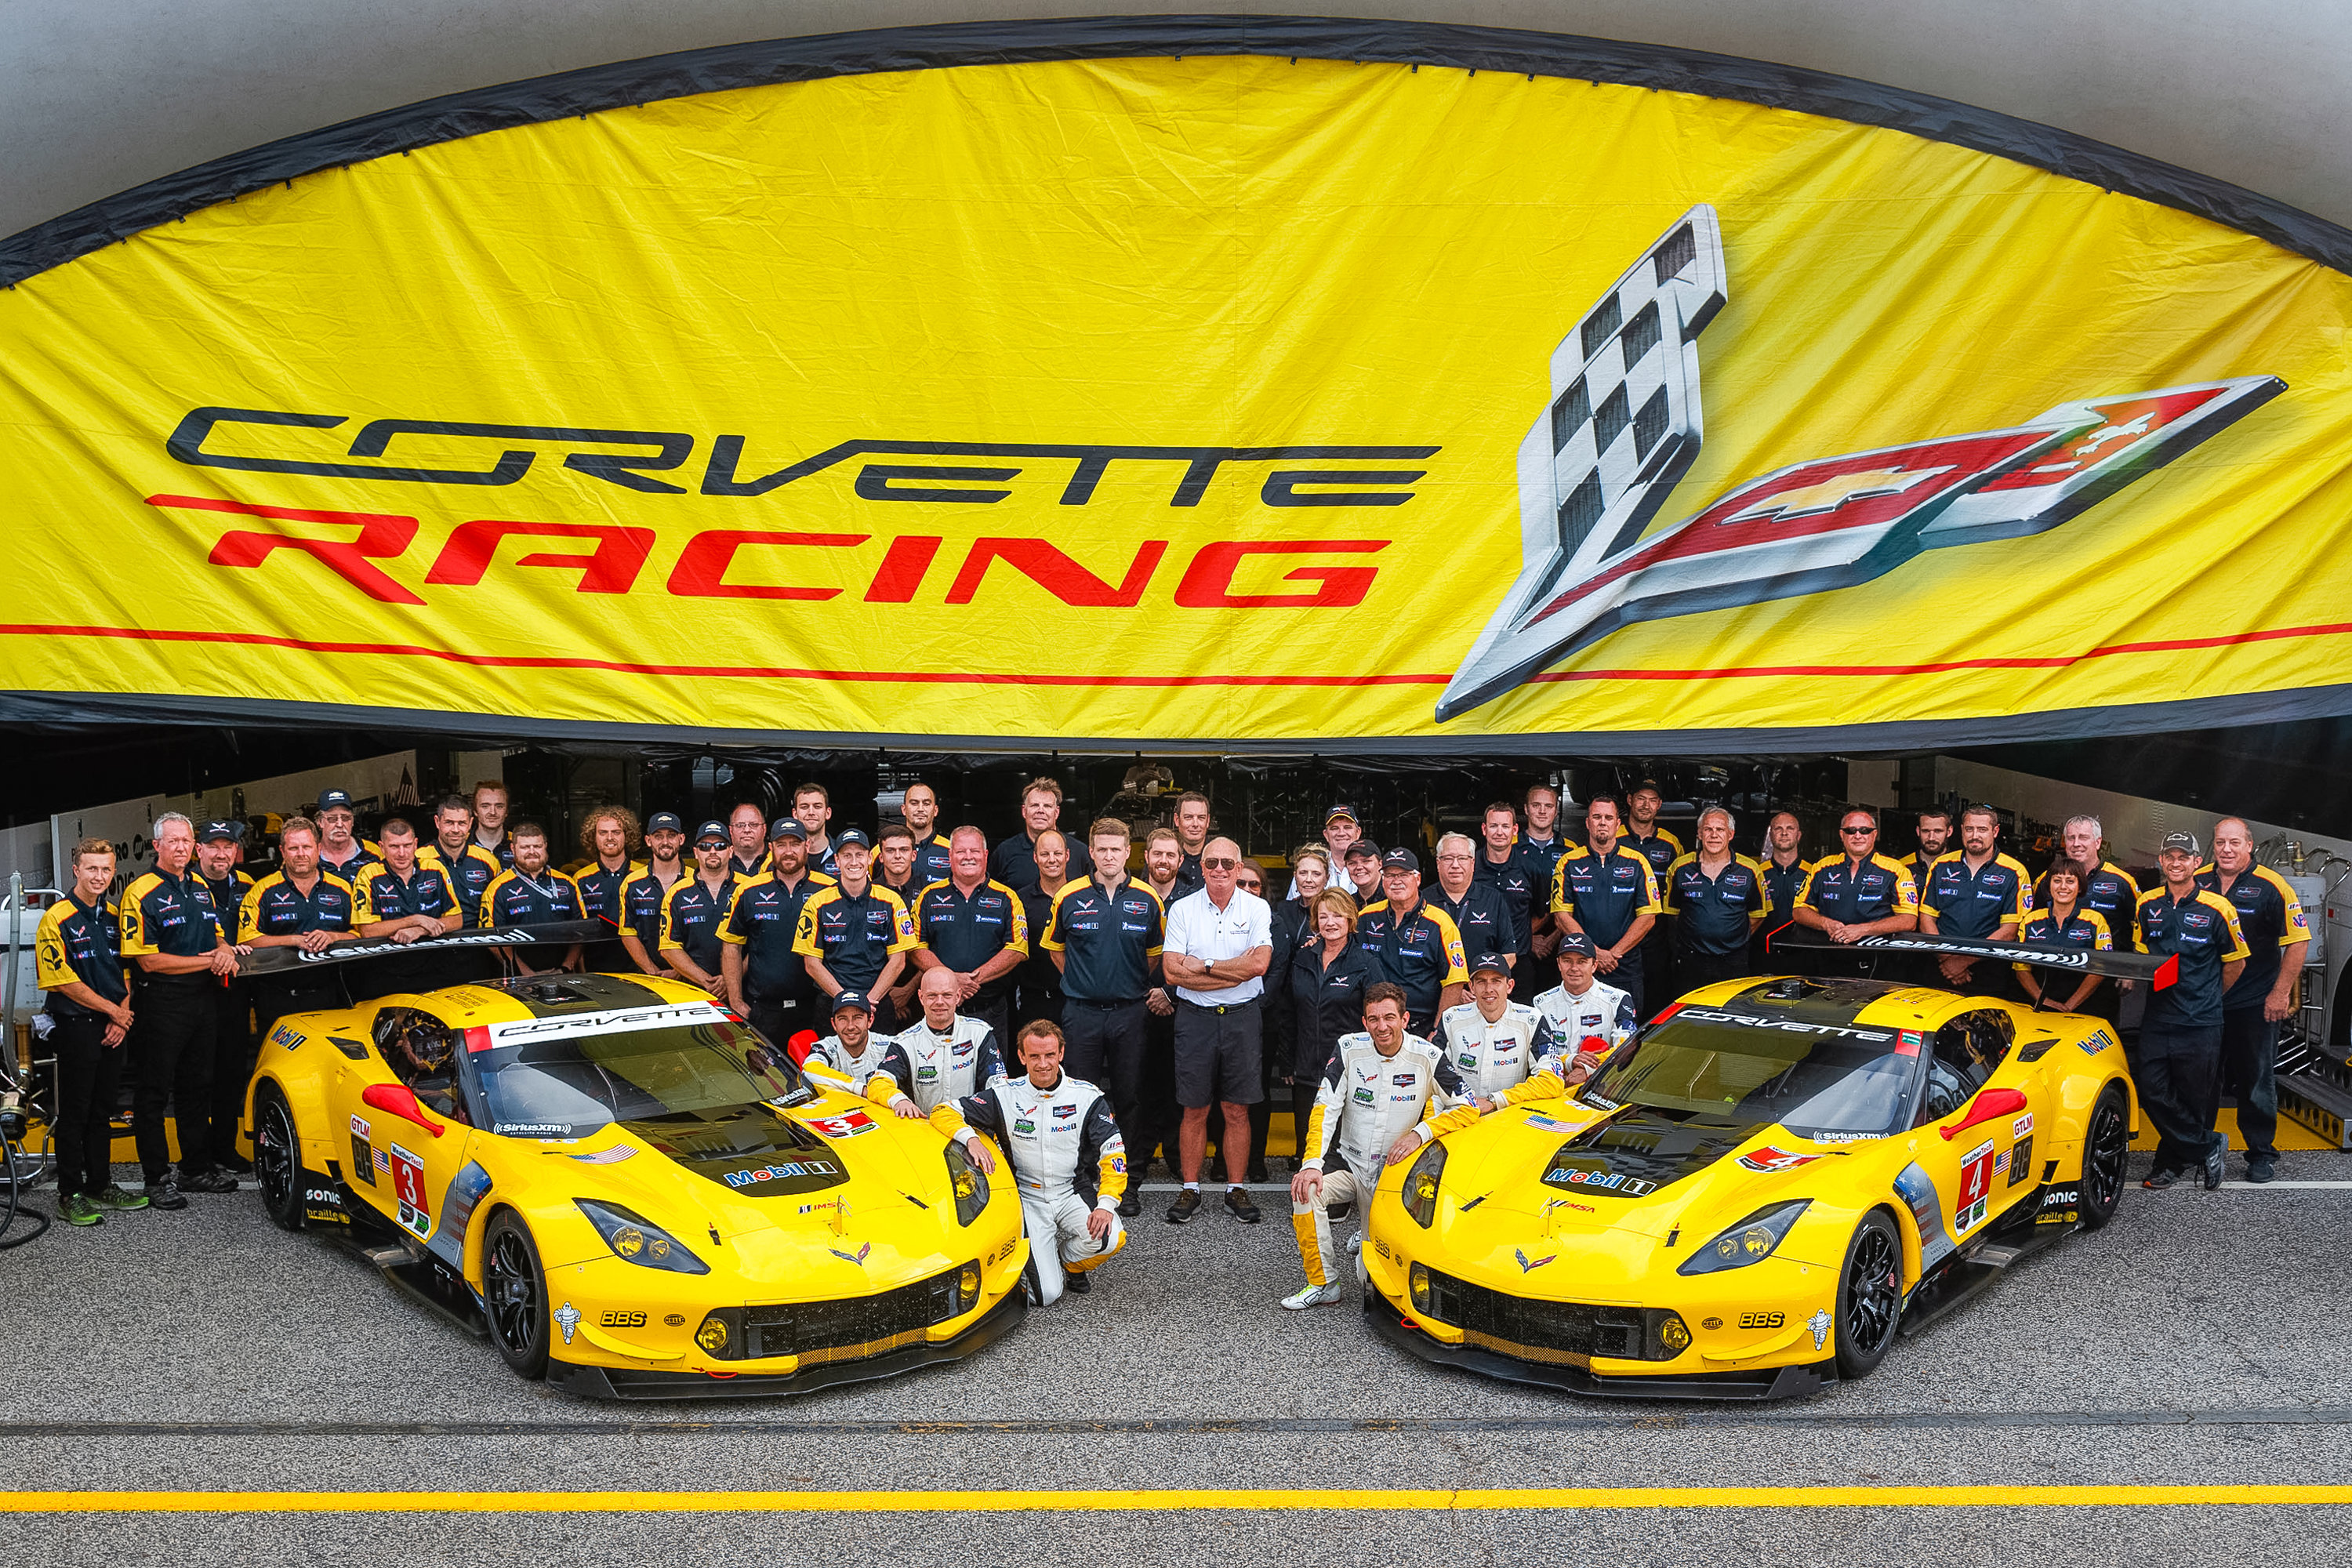 Corvette Racing Also Won An Imsa Championship This Weekend